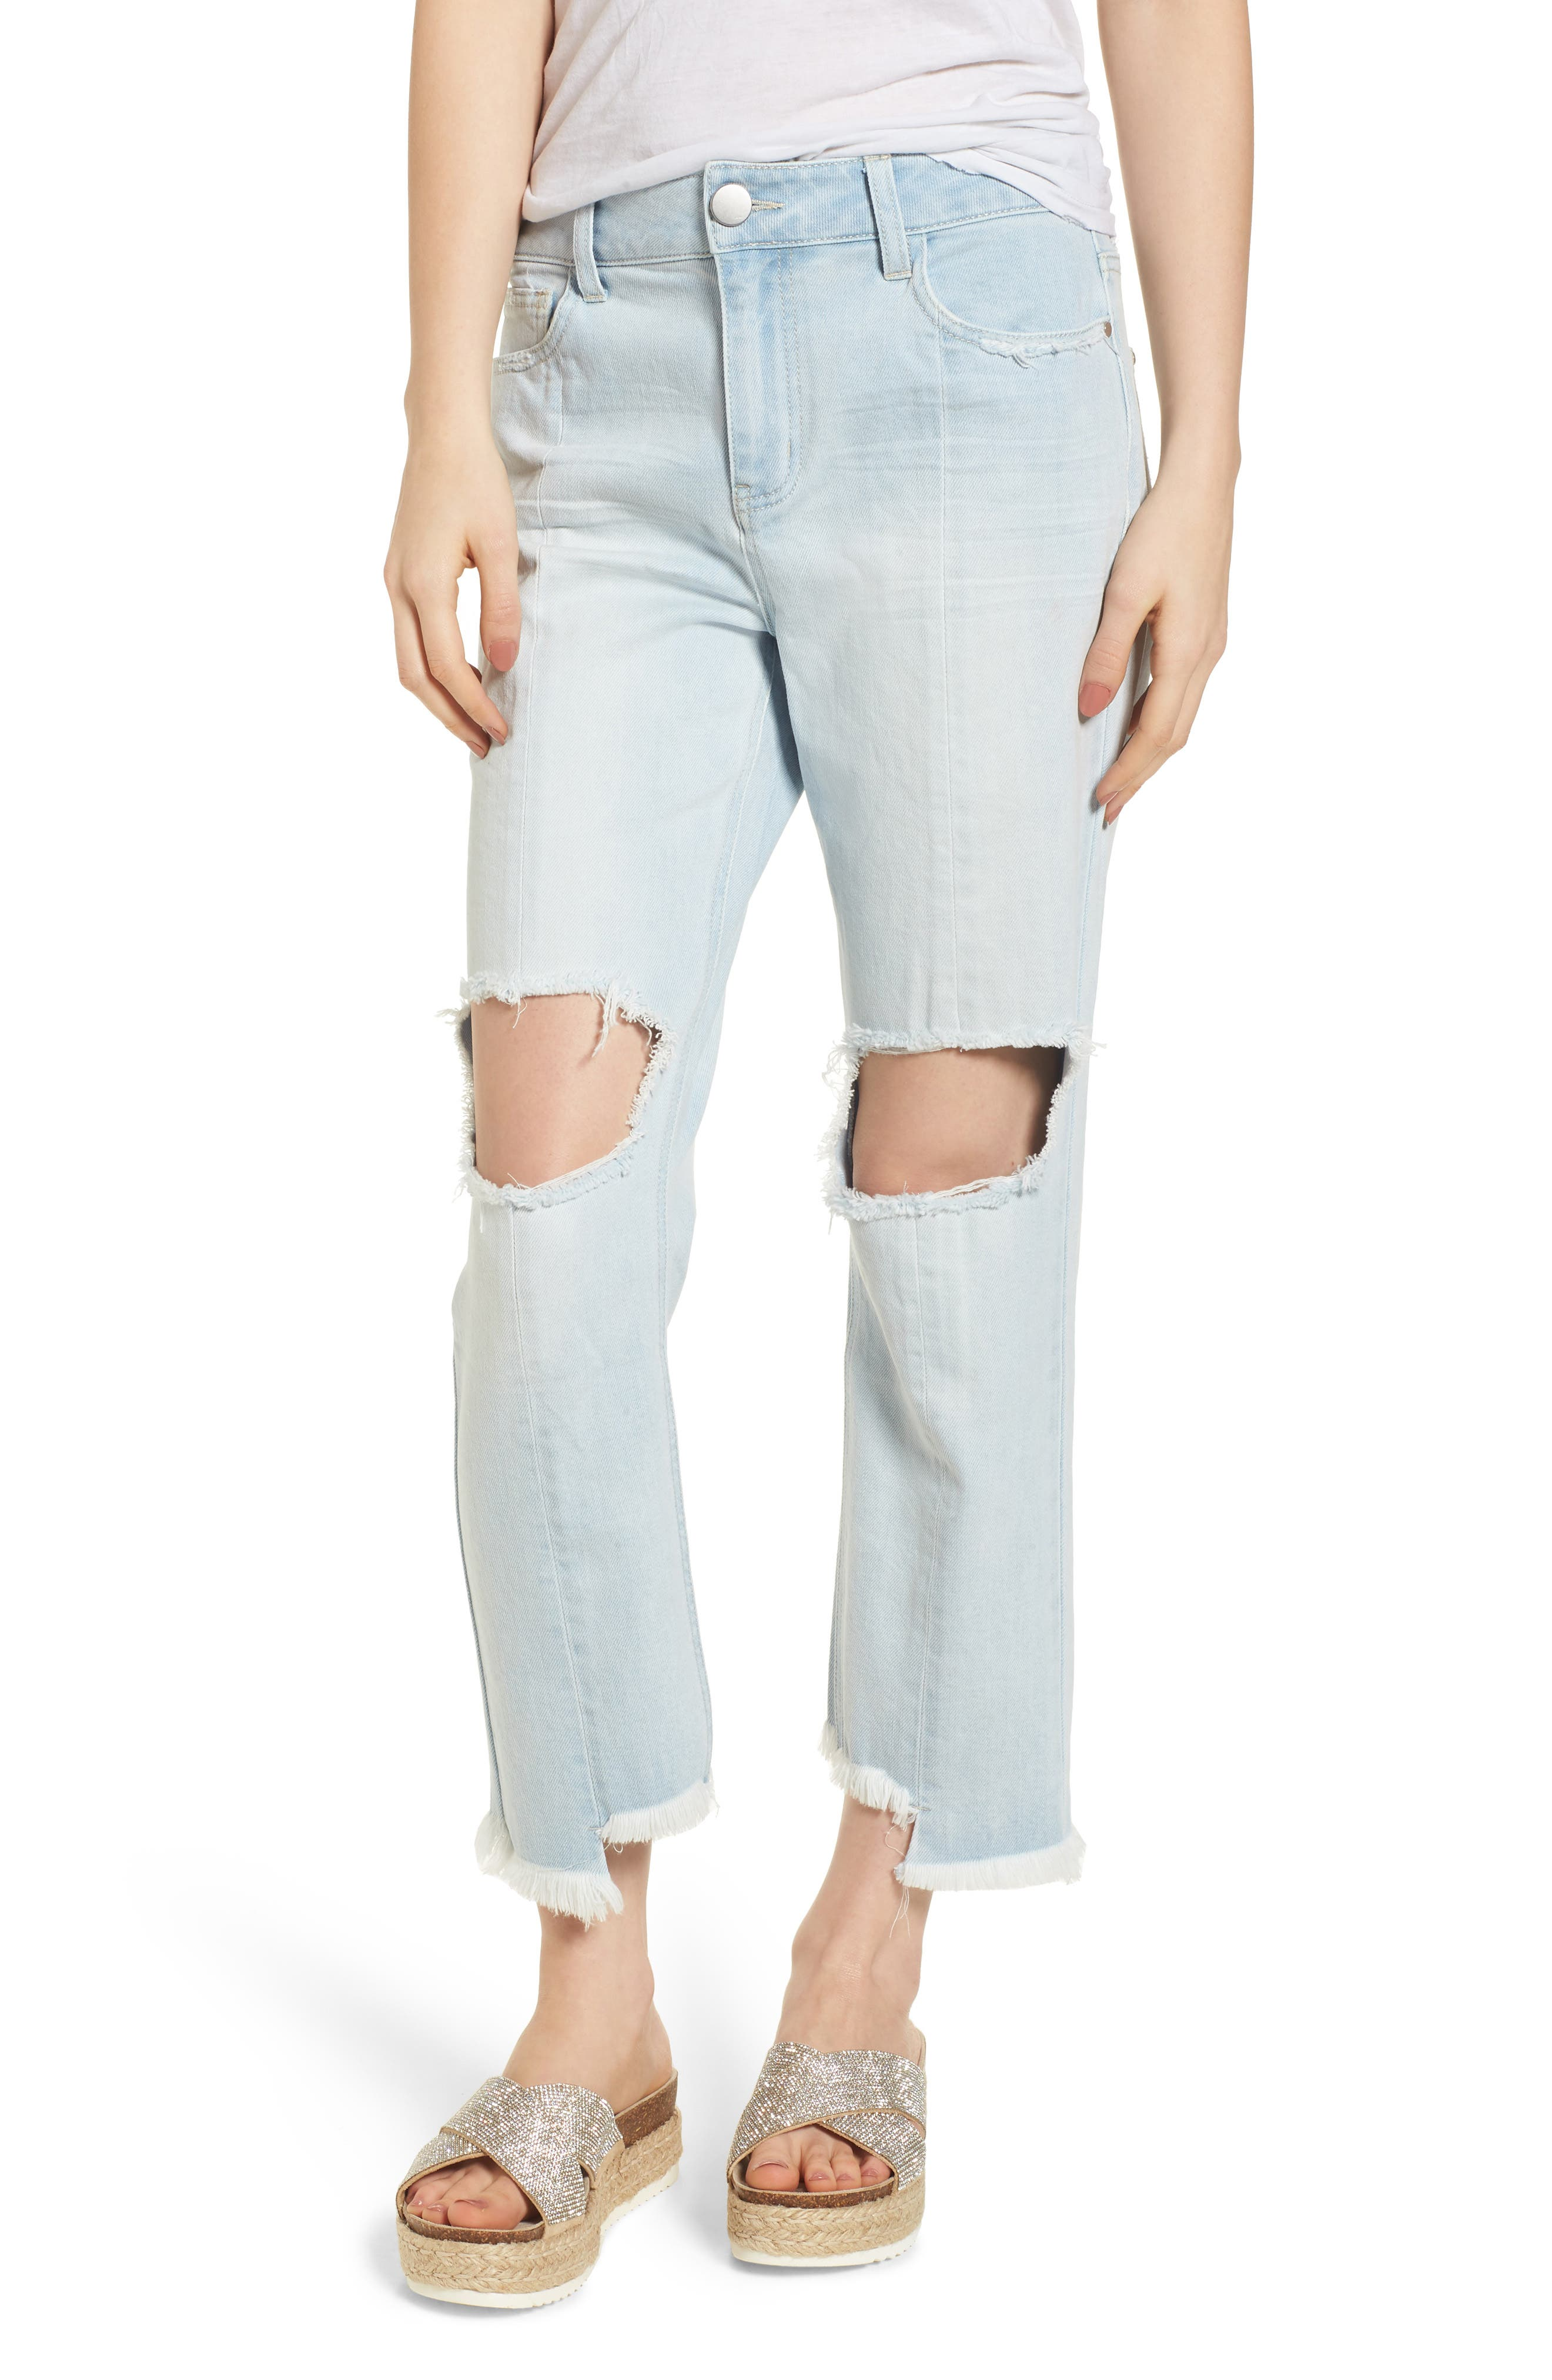 TINSEL Ripped Boyfriend Jeans, Main, color, SUPER LIGHT WASH